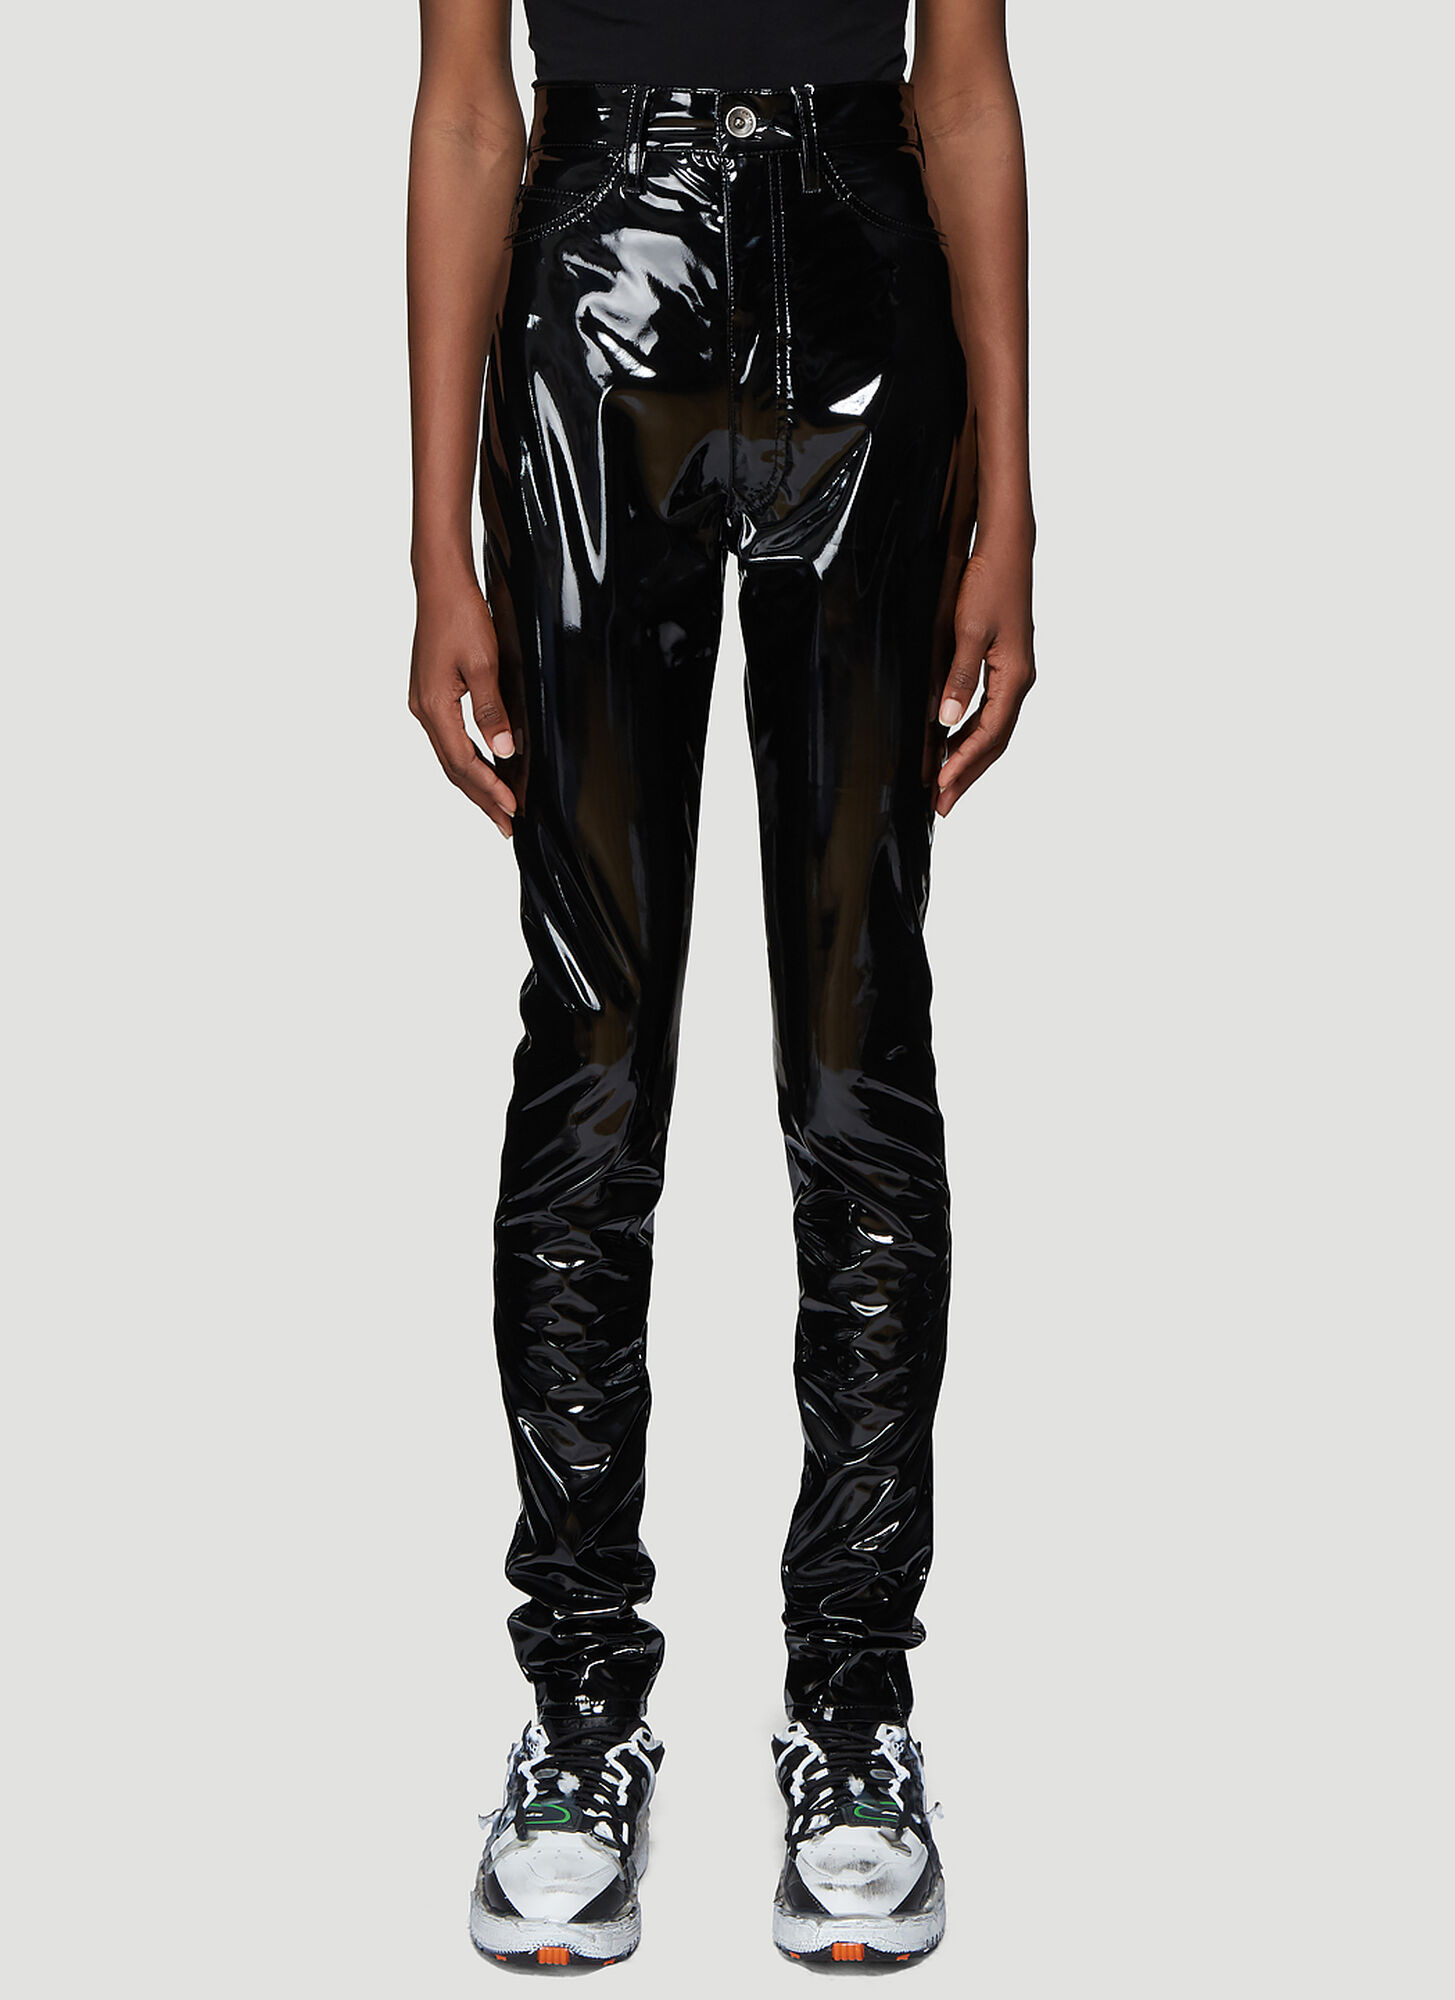 Maison Margiela Vinyl Pants in Black